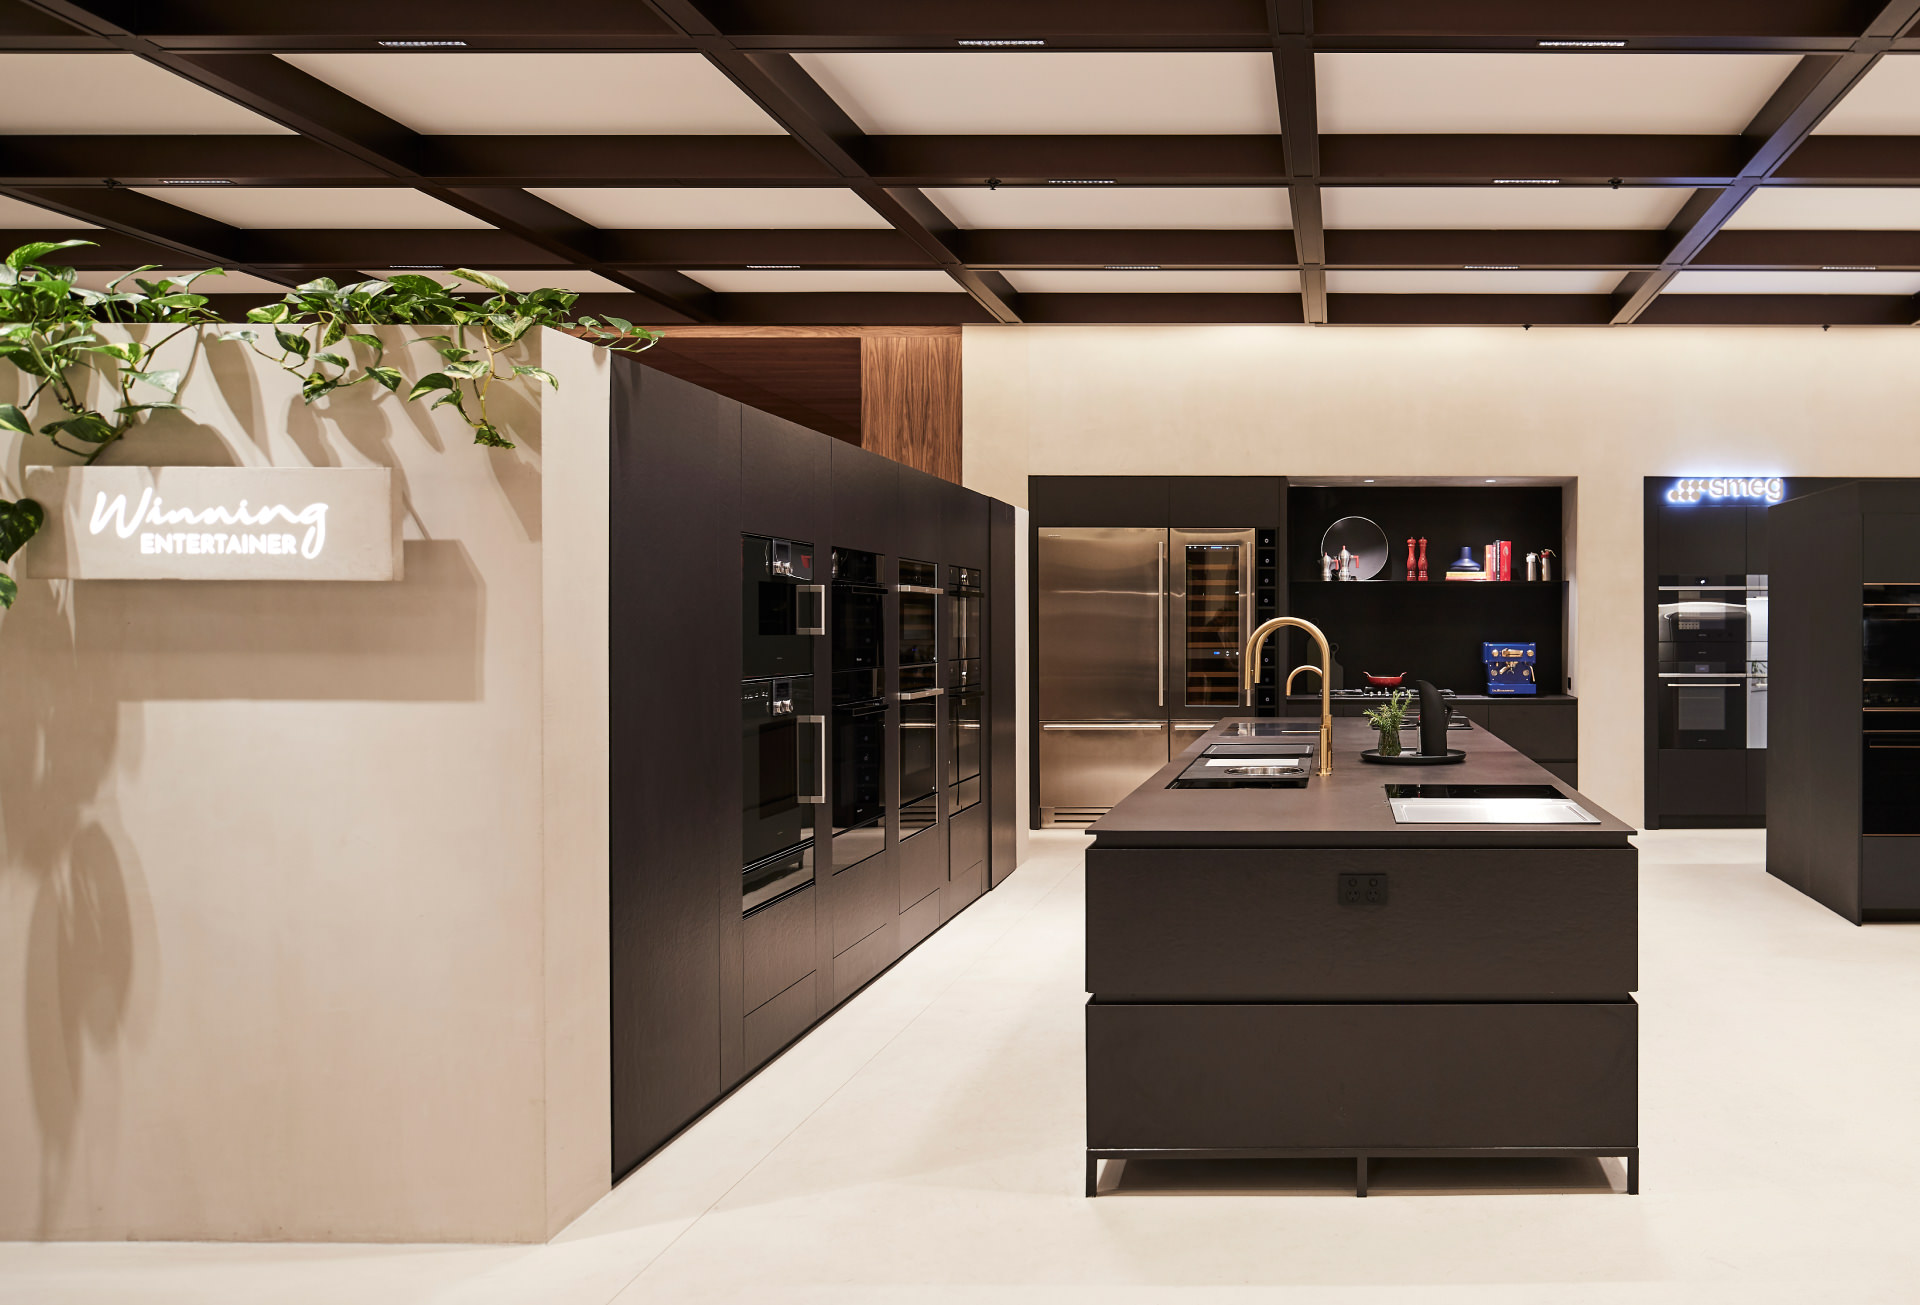 Cera Stribley Architecture Interior Design Winning Appliances Chadstone winning entertainer display